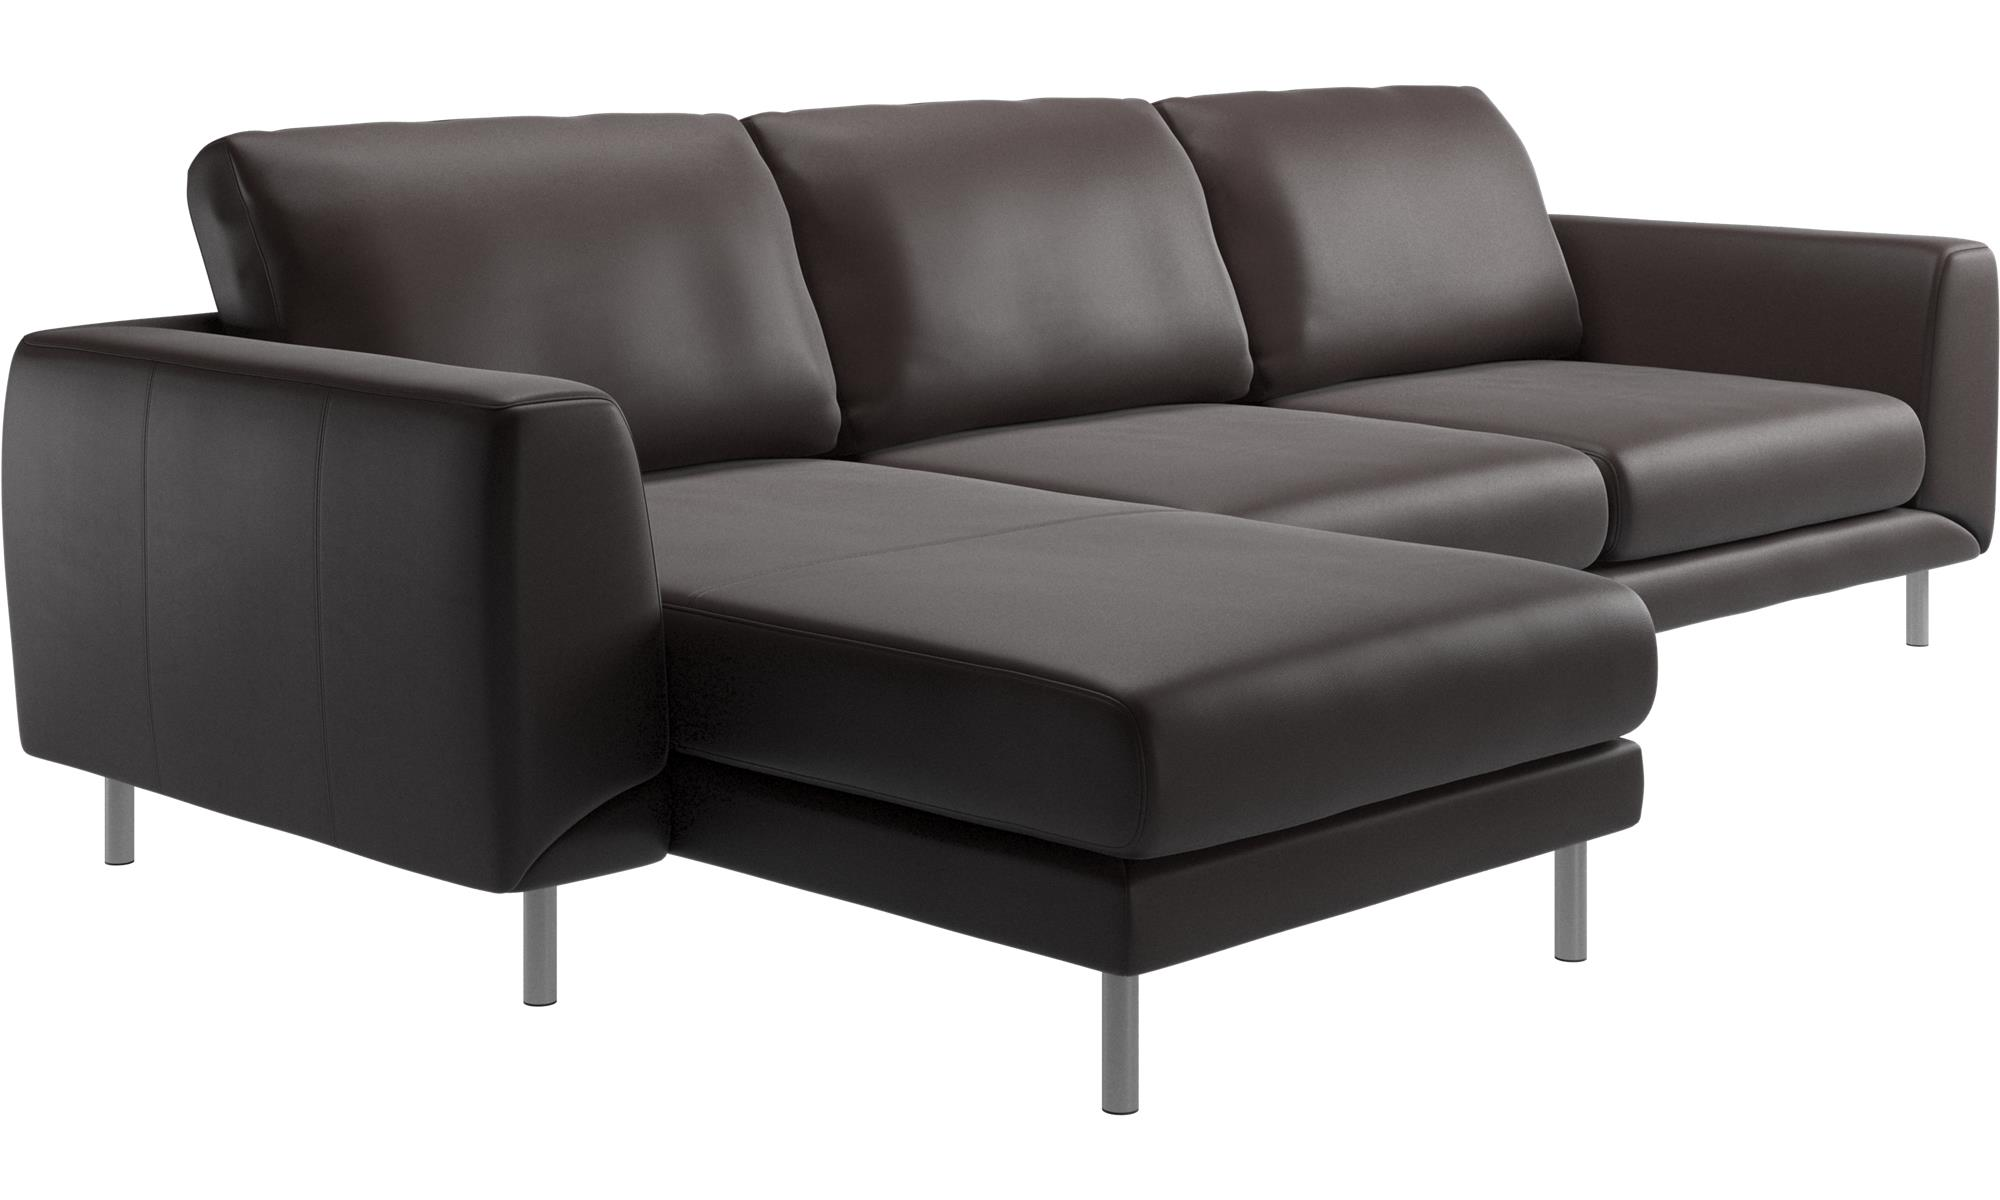 Chaise Lounge Sofas Fargo Sofa With Resting Unit Brown Leather